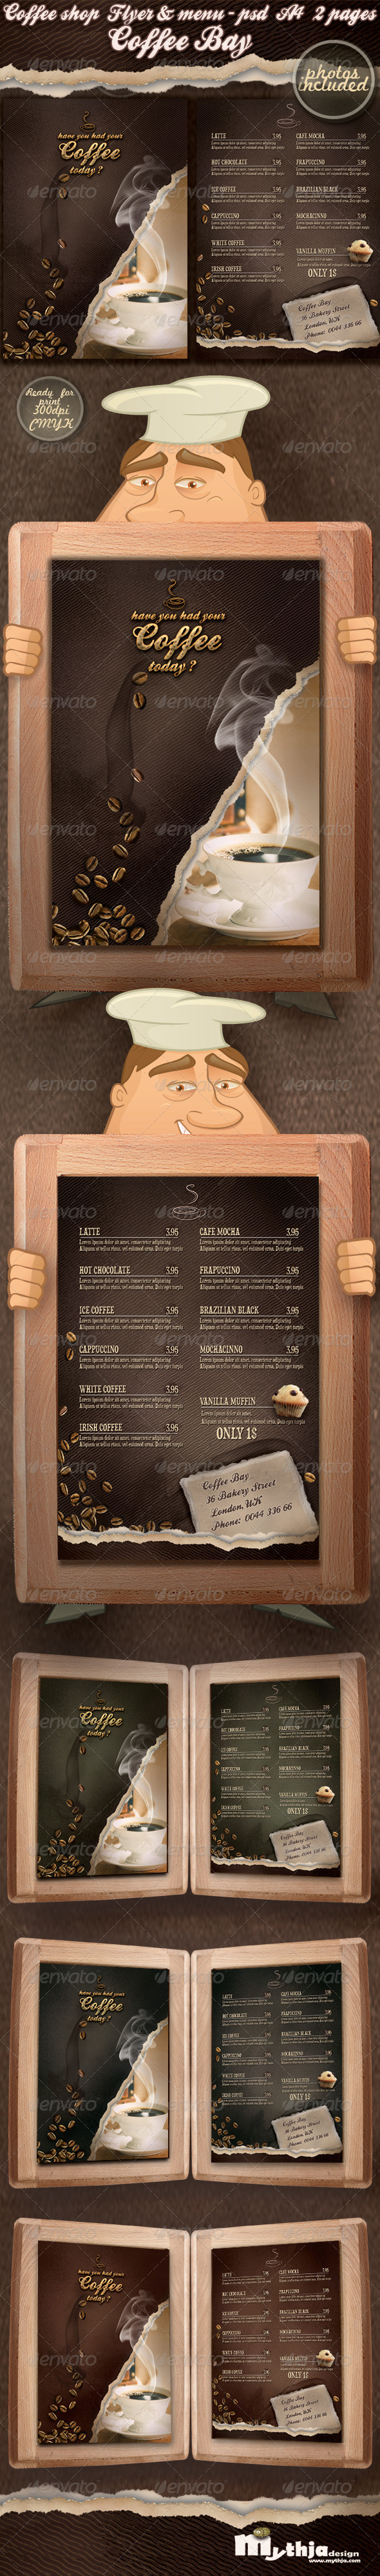 Coffee shop flyer & menu - photos included  - Food Menus Print Templates